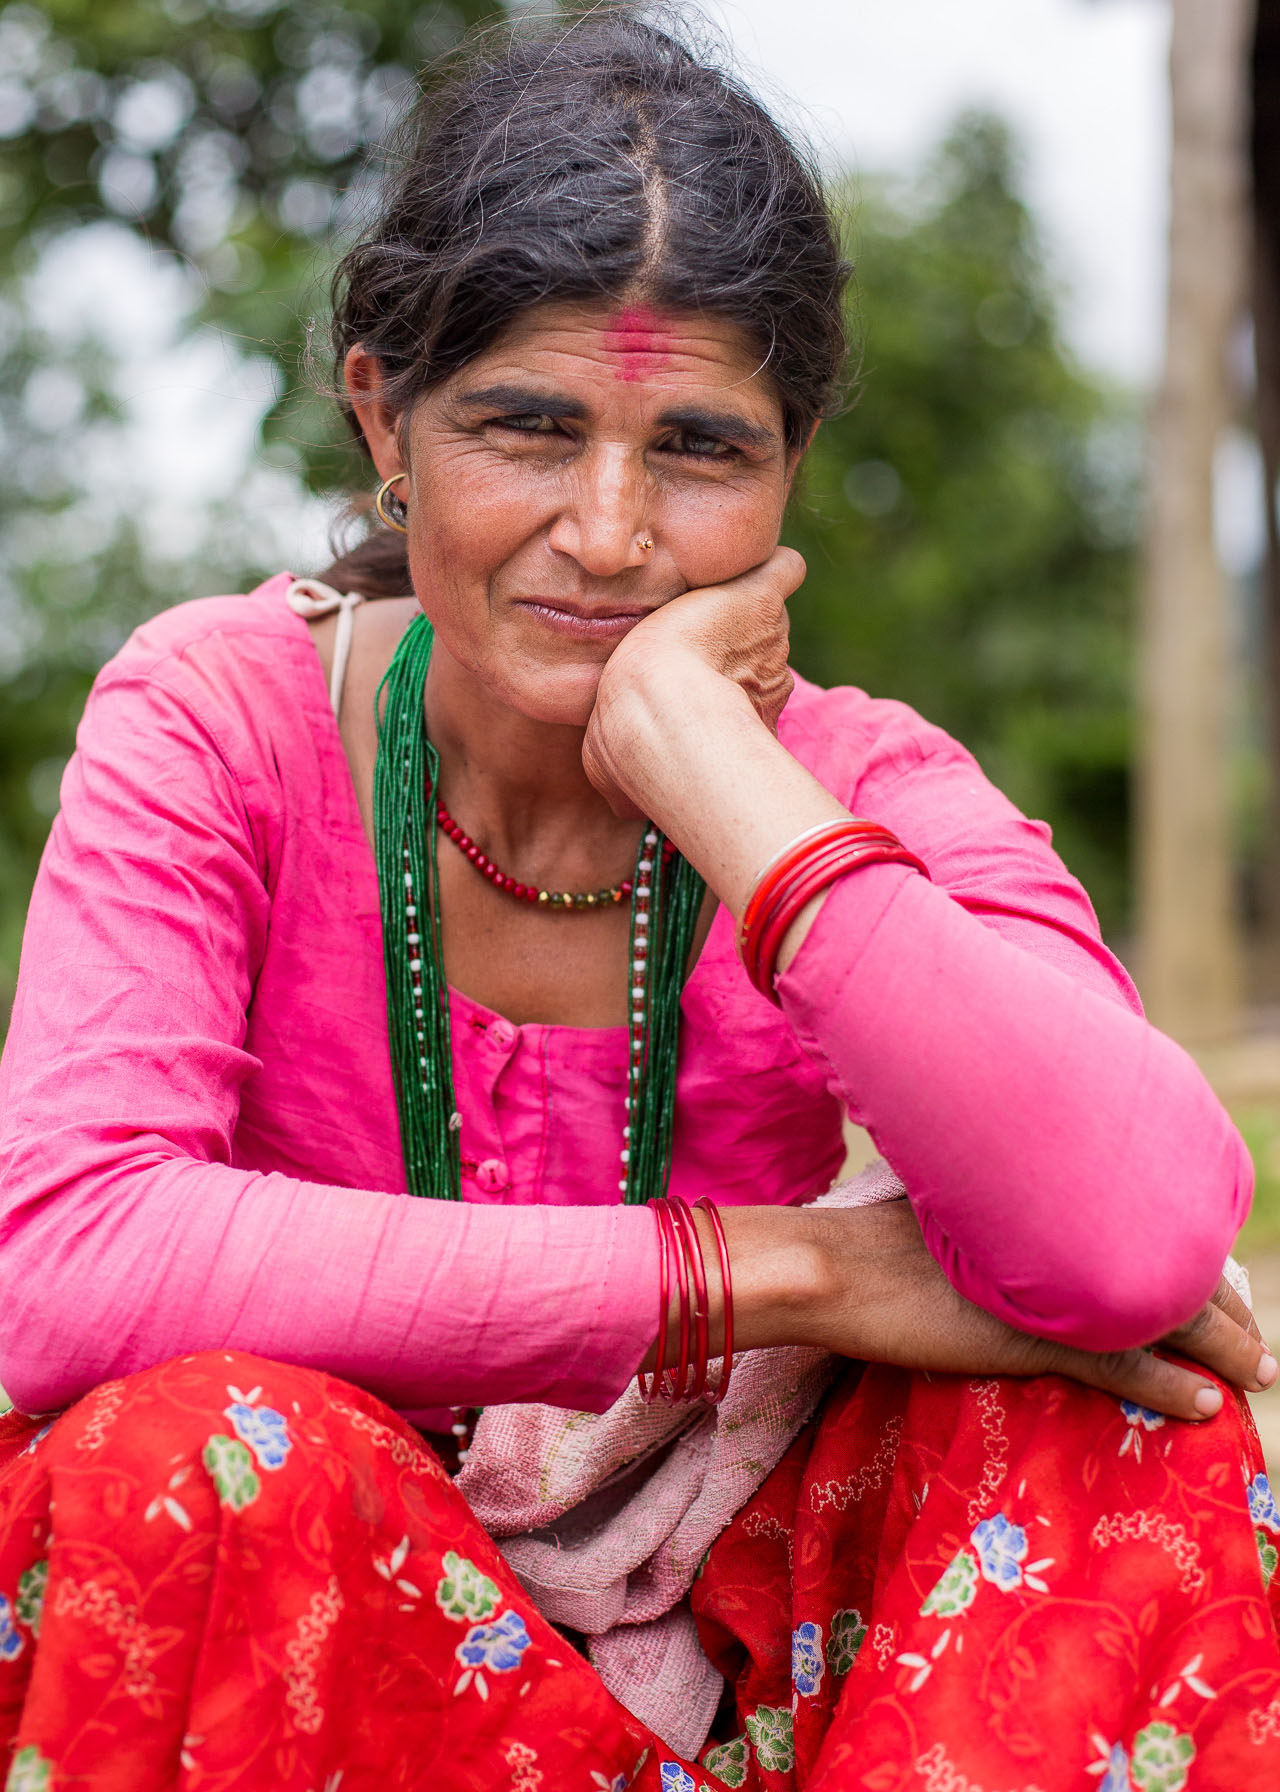 Rohit's mother in law.